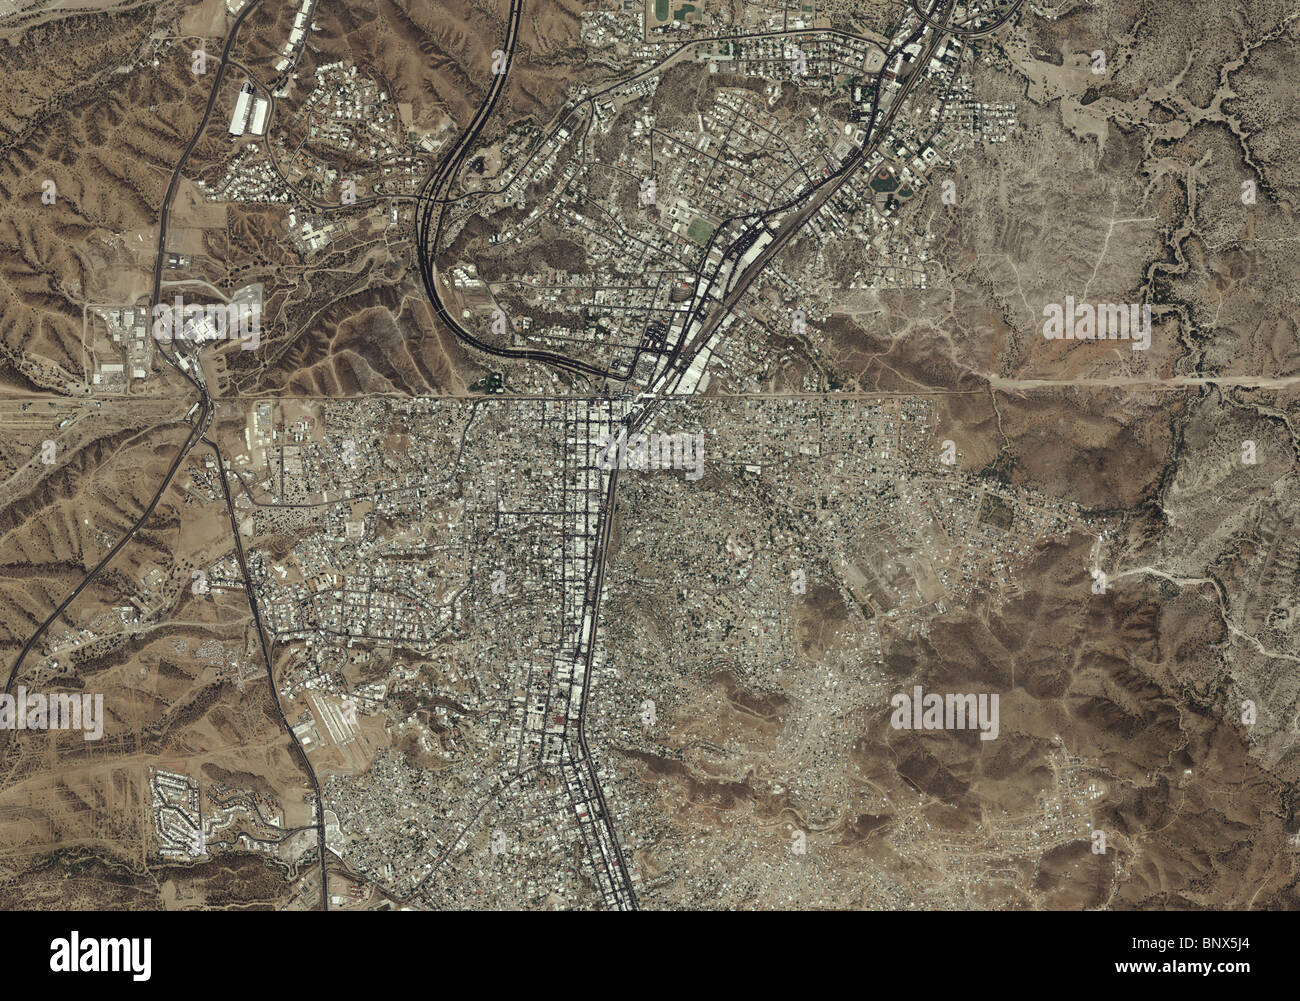 Aerial Map View Above Mexican American Border Nogales Arizona - Aerial maps over mexican us border